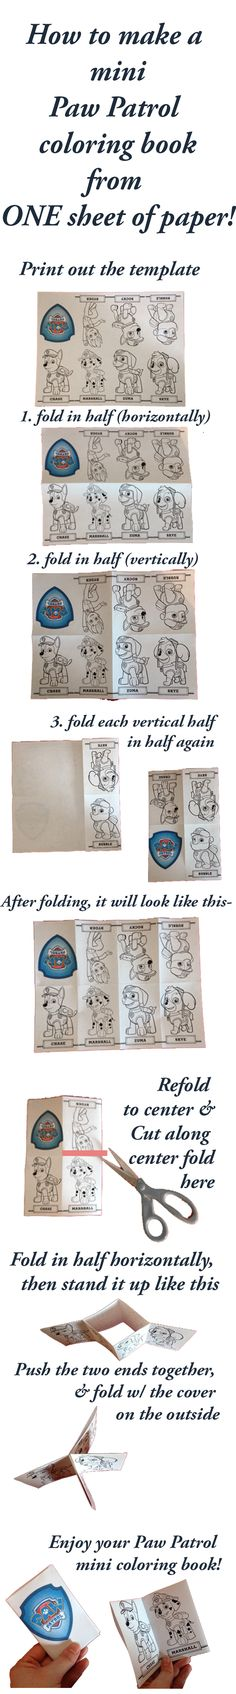 Paw Patrol Coloring Books DIY; How to make a mini Paw Patrol coloring book from a single sheet of paper!